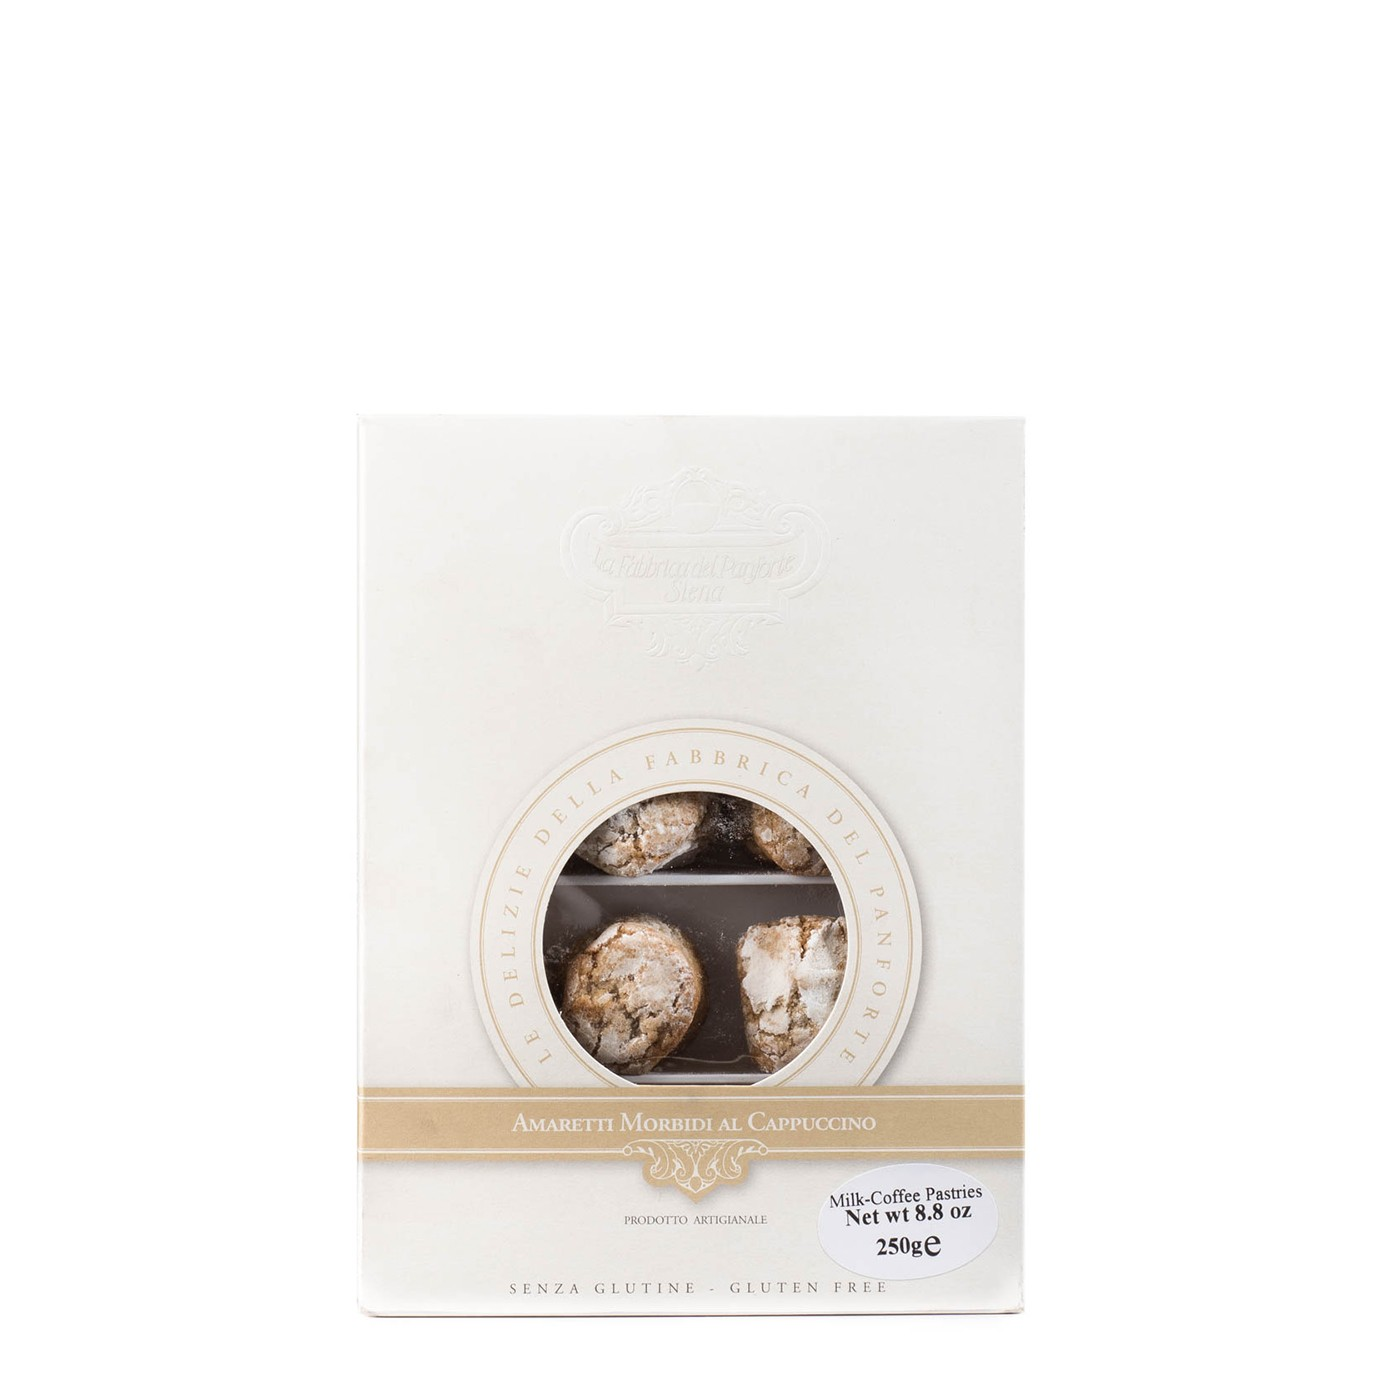 Soft Amaretti Cookies with Coffee 8.8 oz